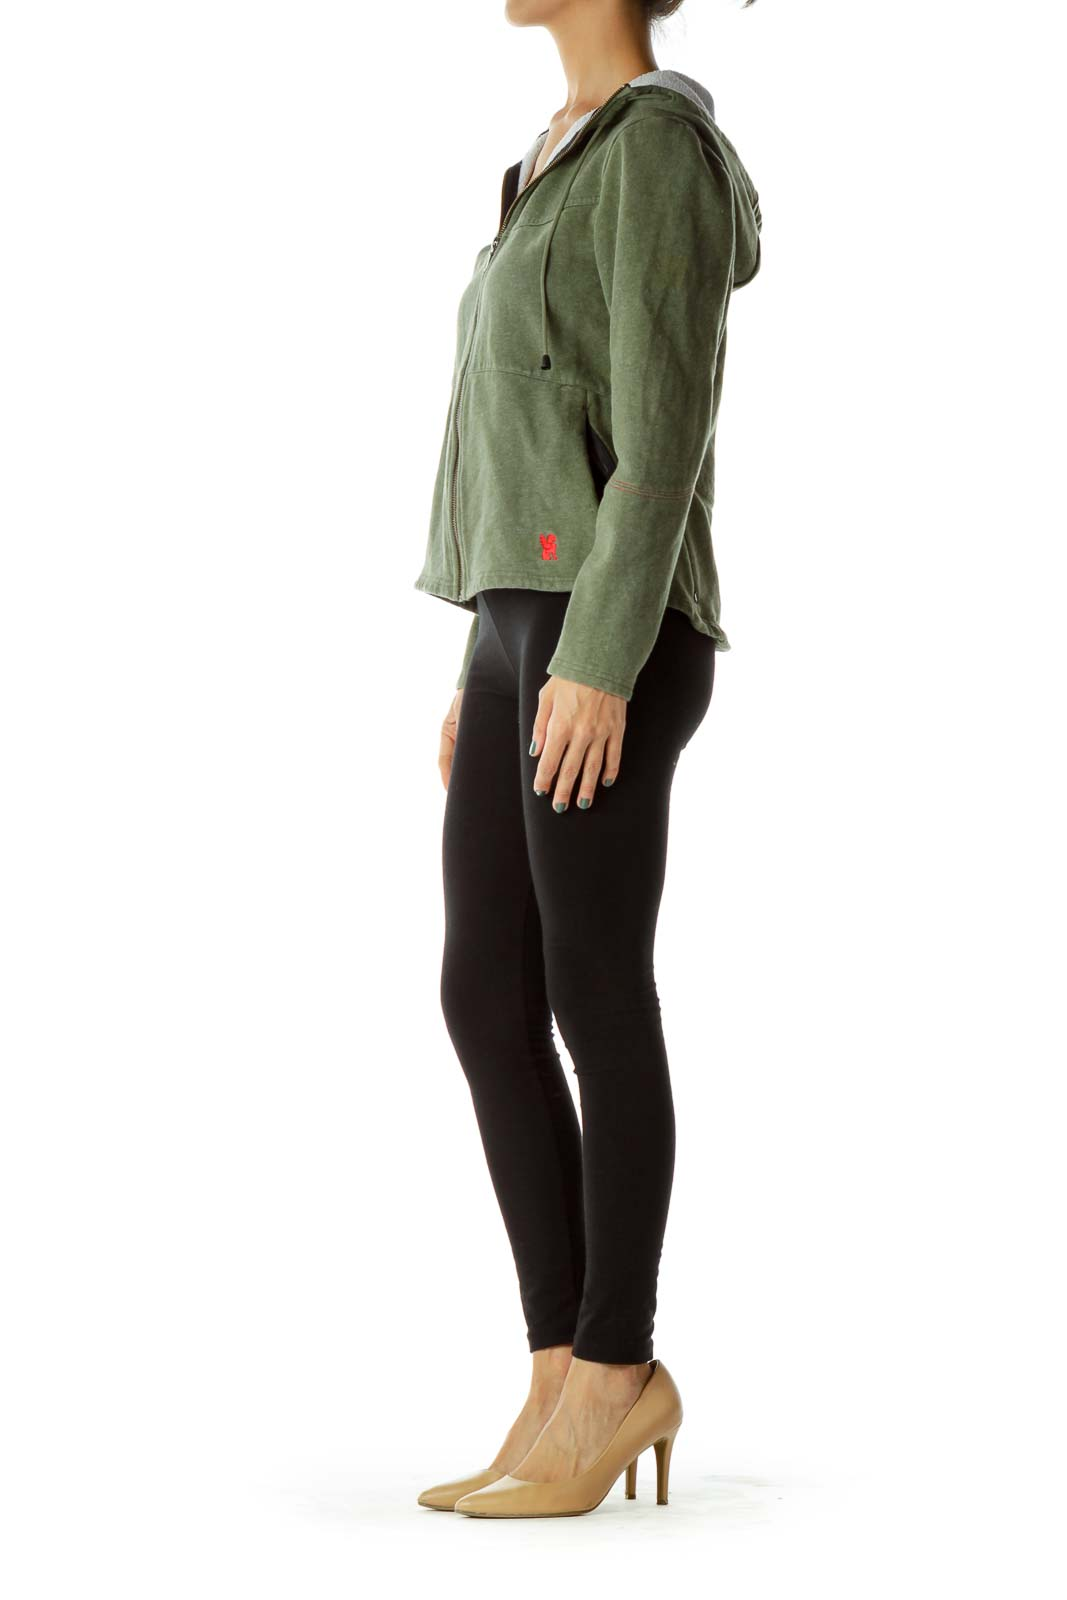 Green Hooded Zippered Sweater